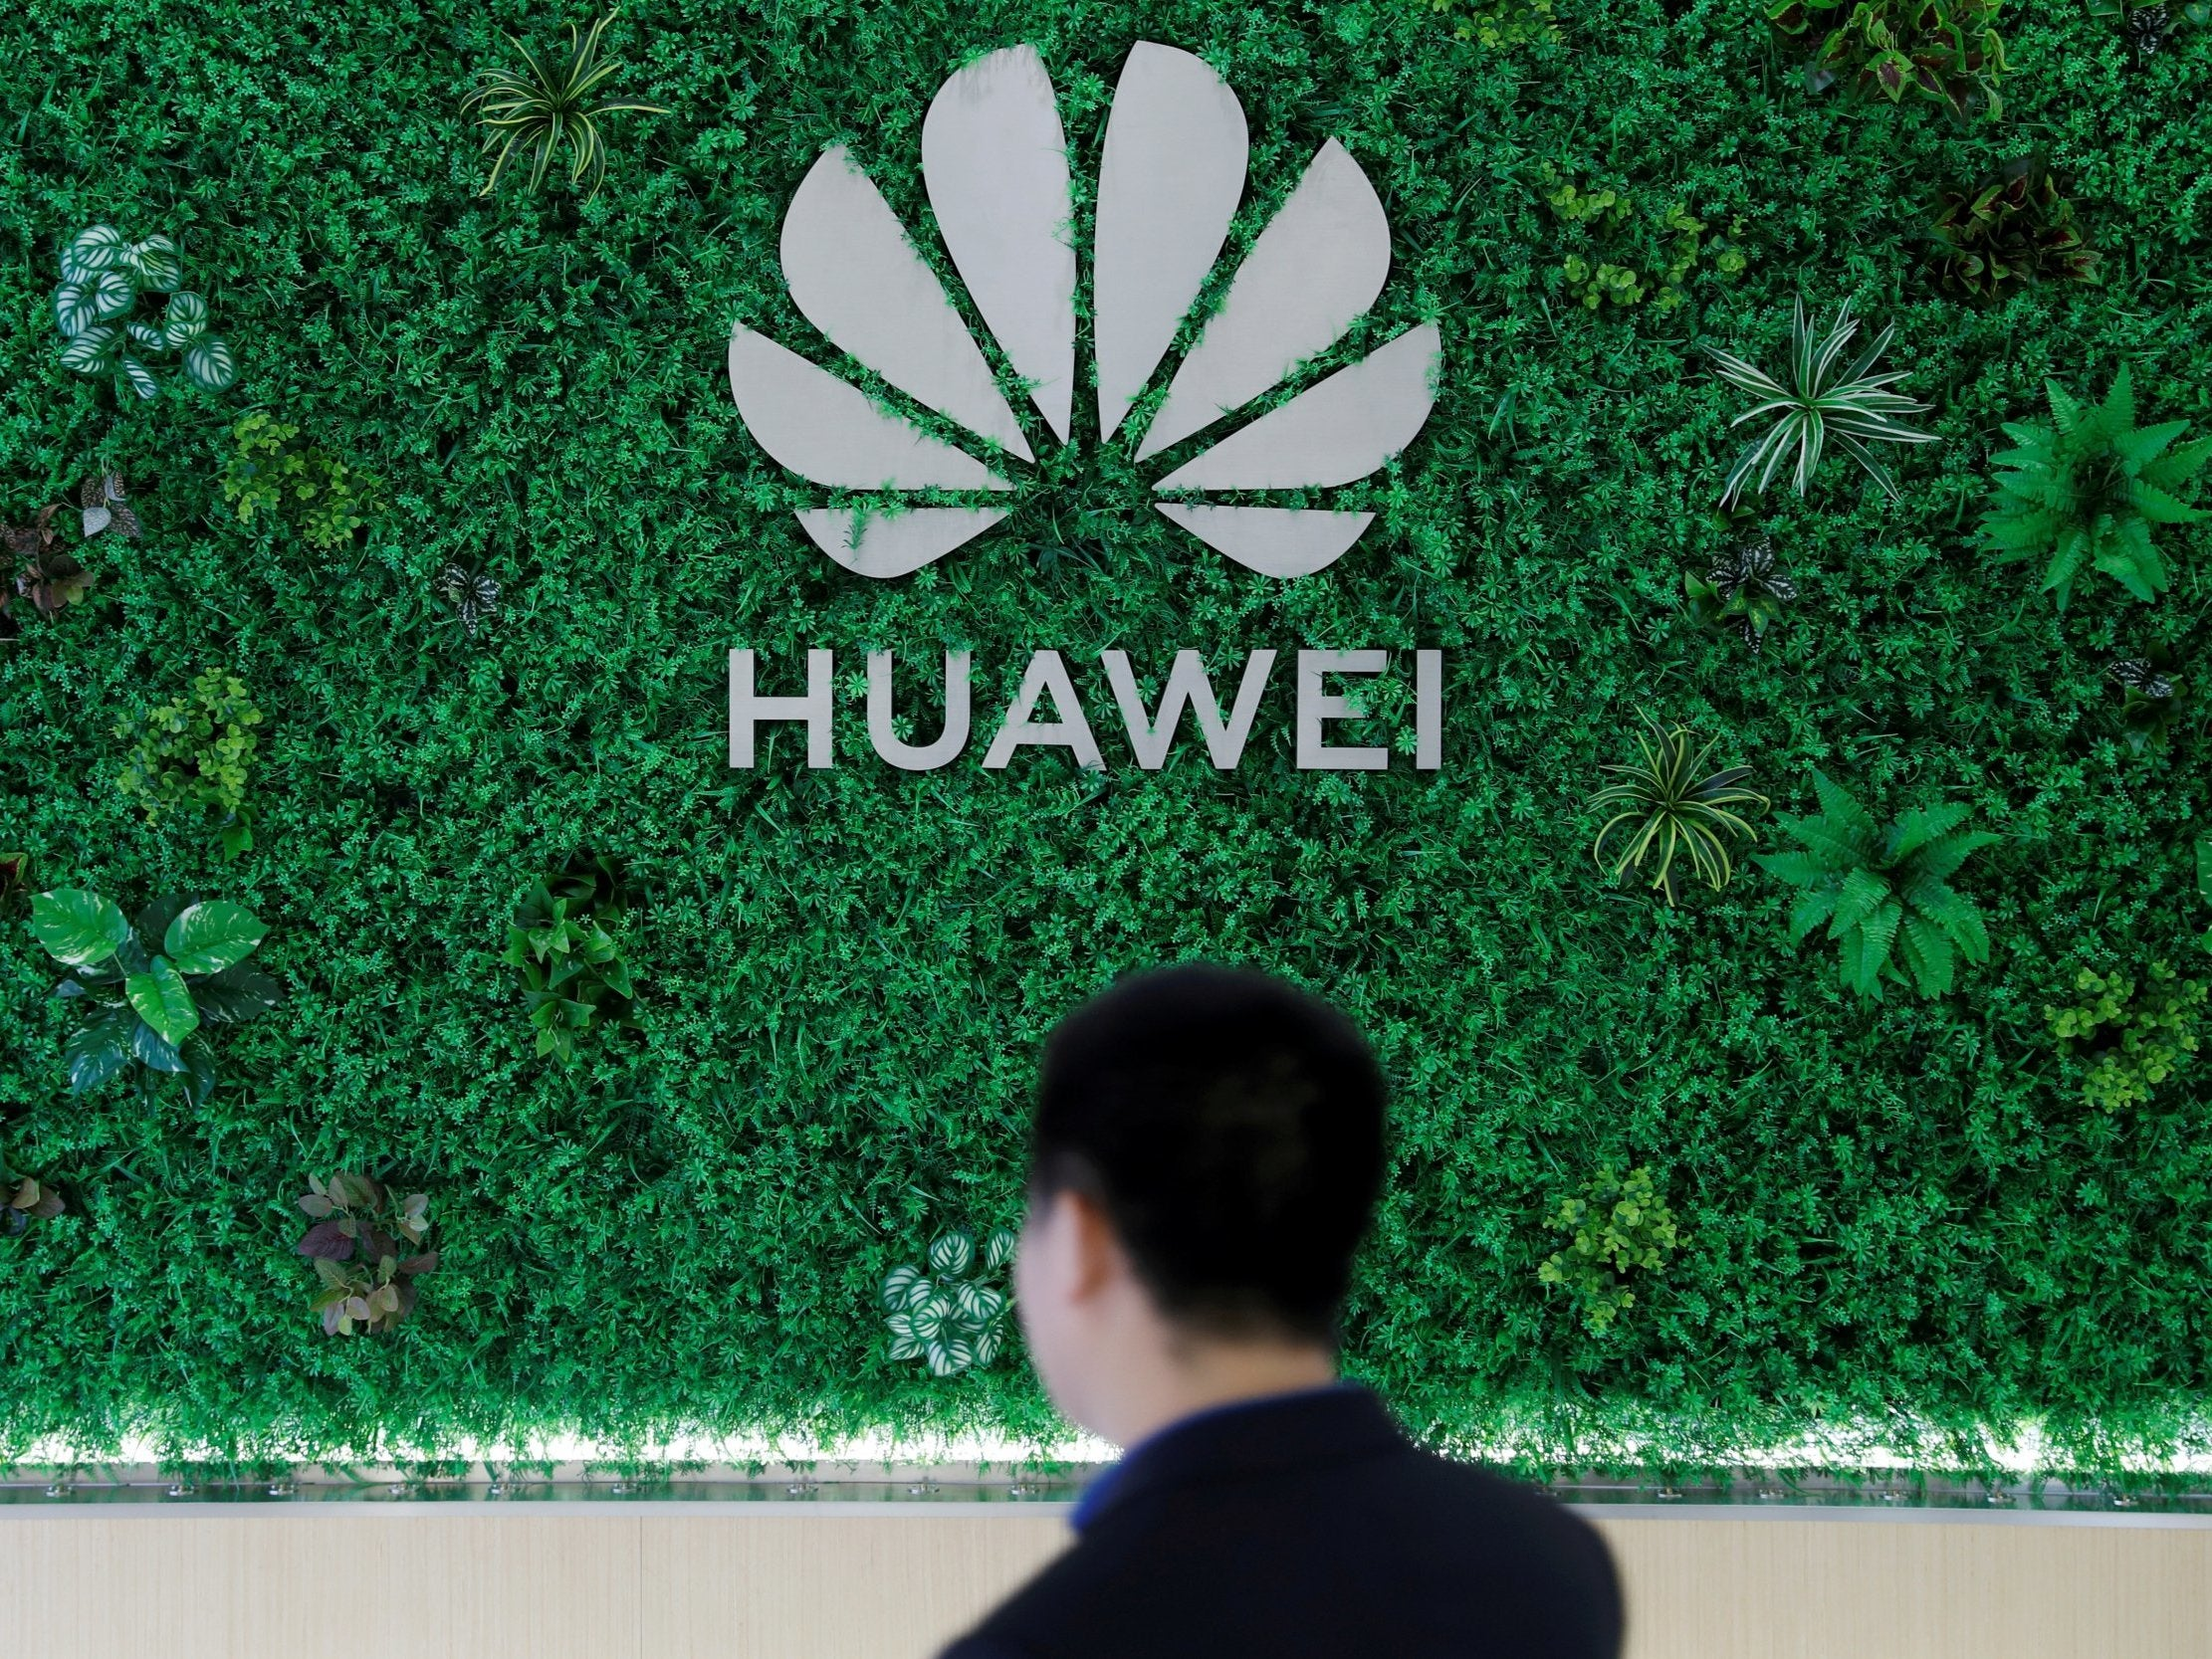 Huawei: Unprecedented leak of secret government talks could lead to criminal investigation, minister says